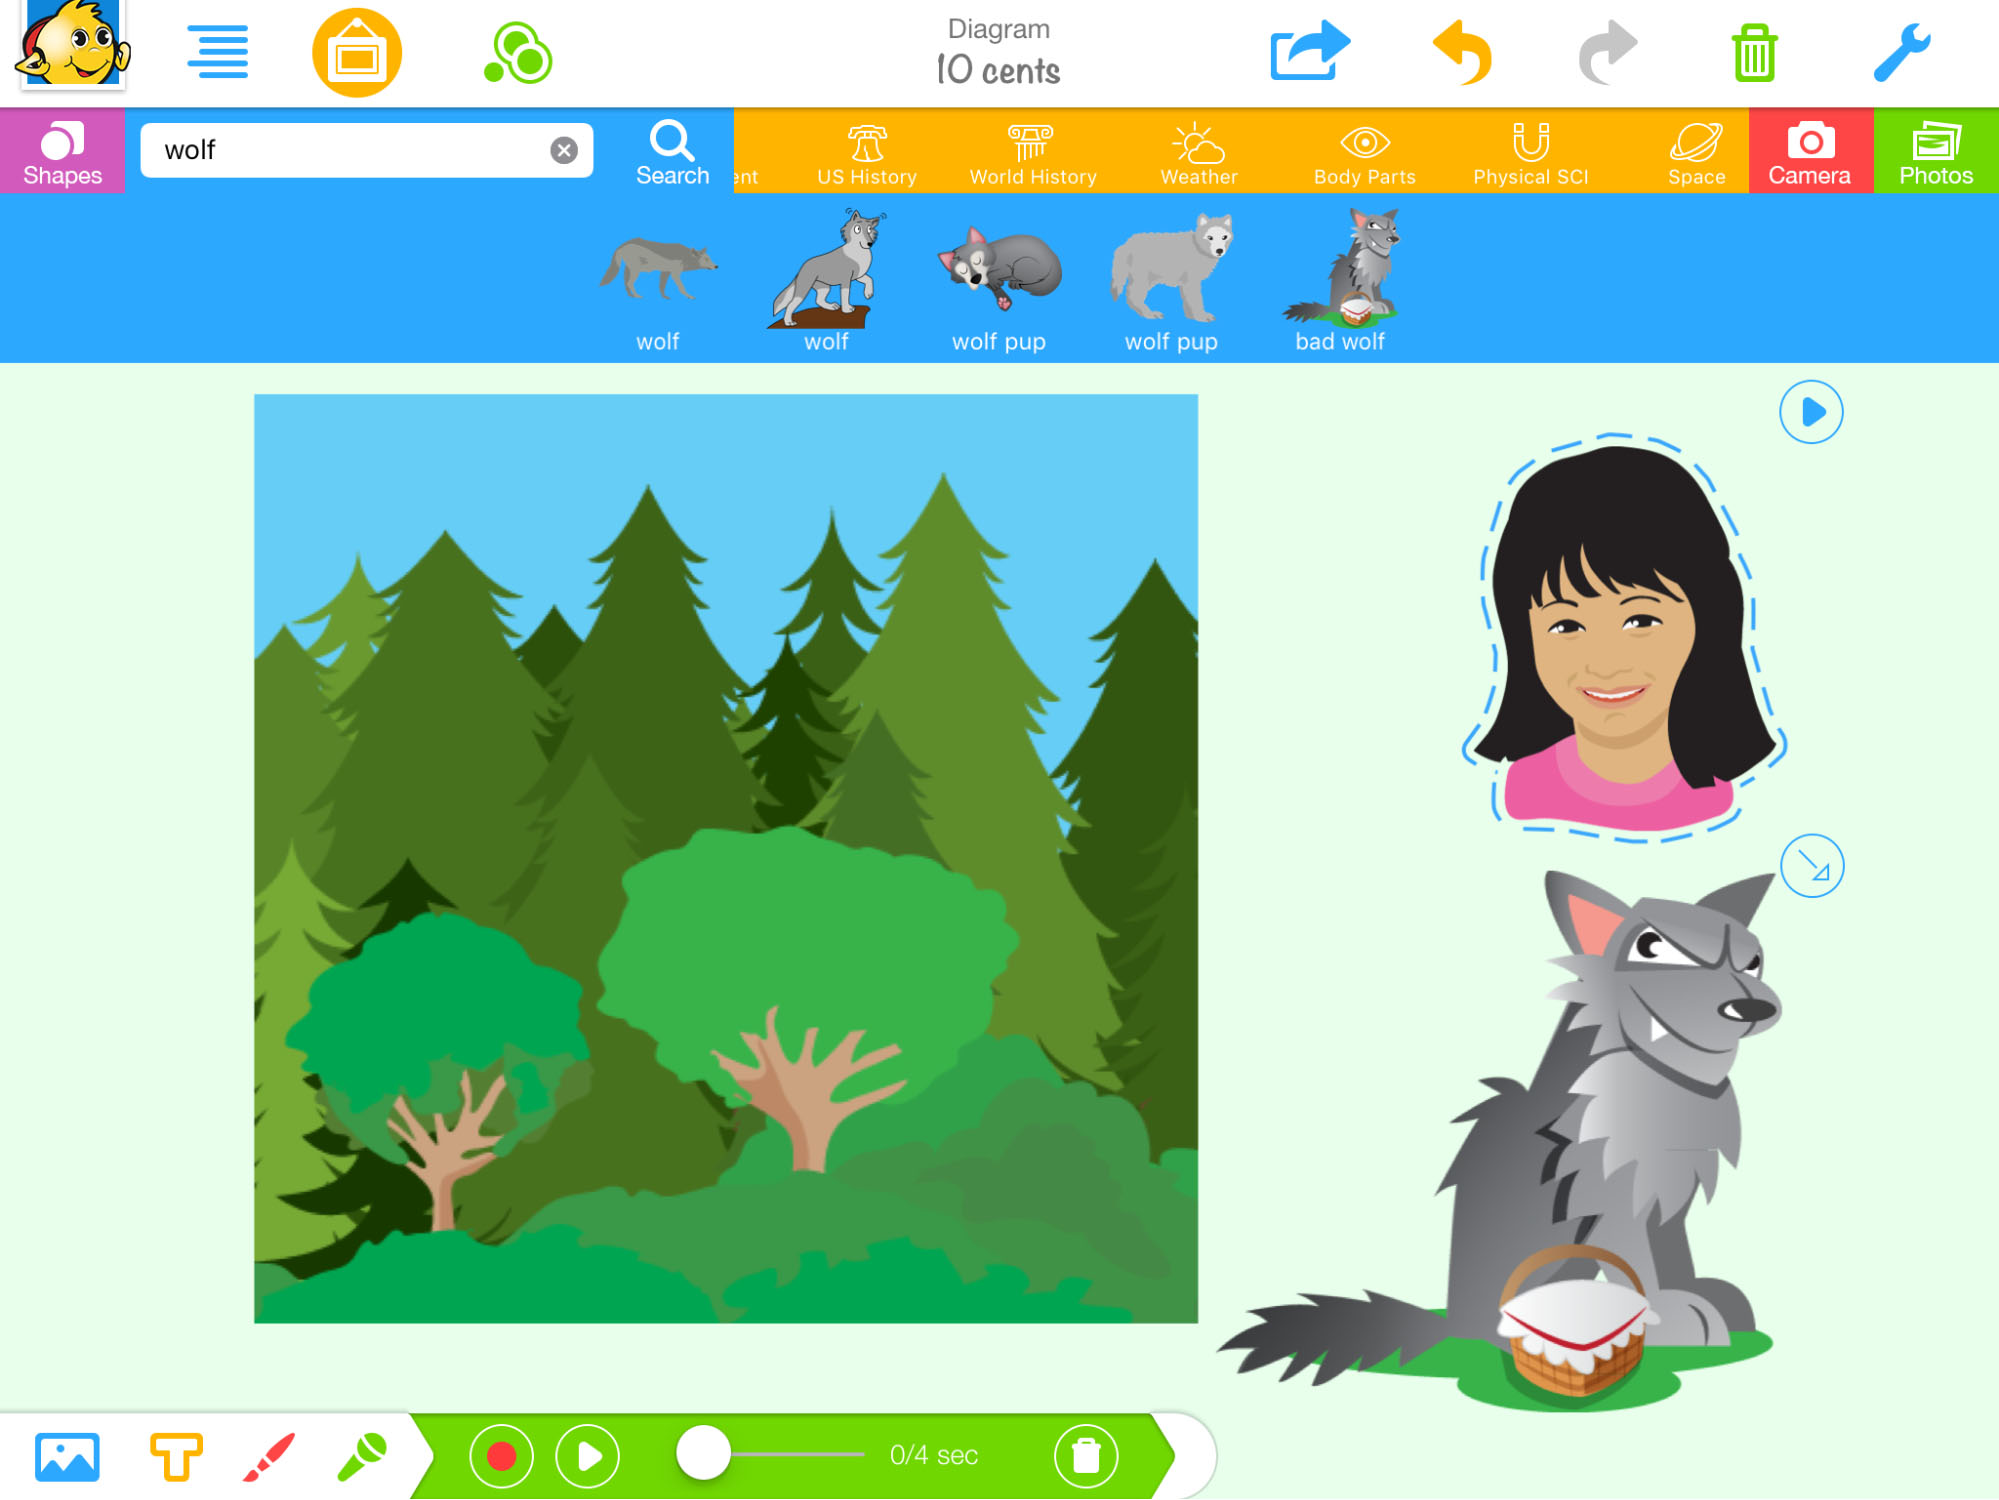 cartoon images of a wolf, a girl, and the woods